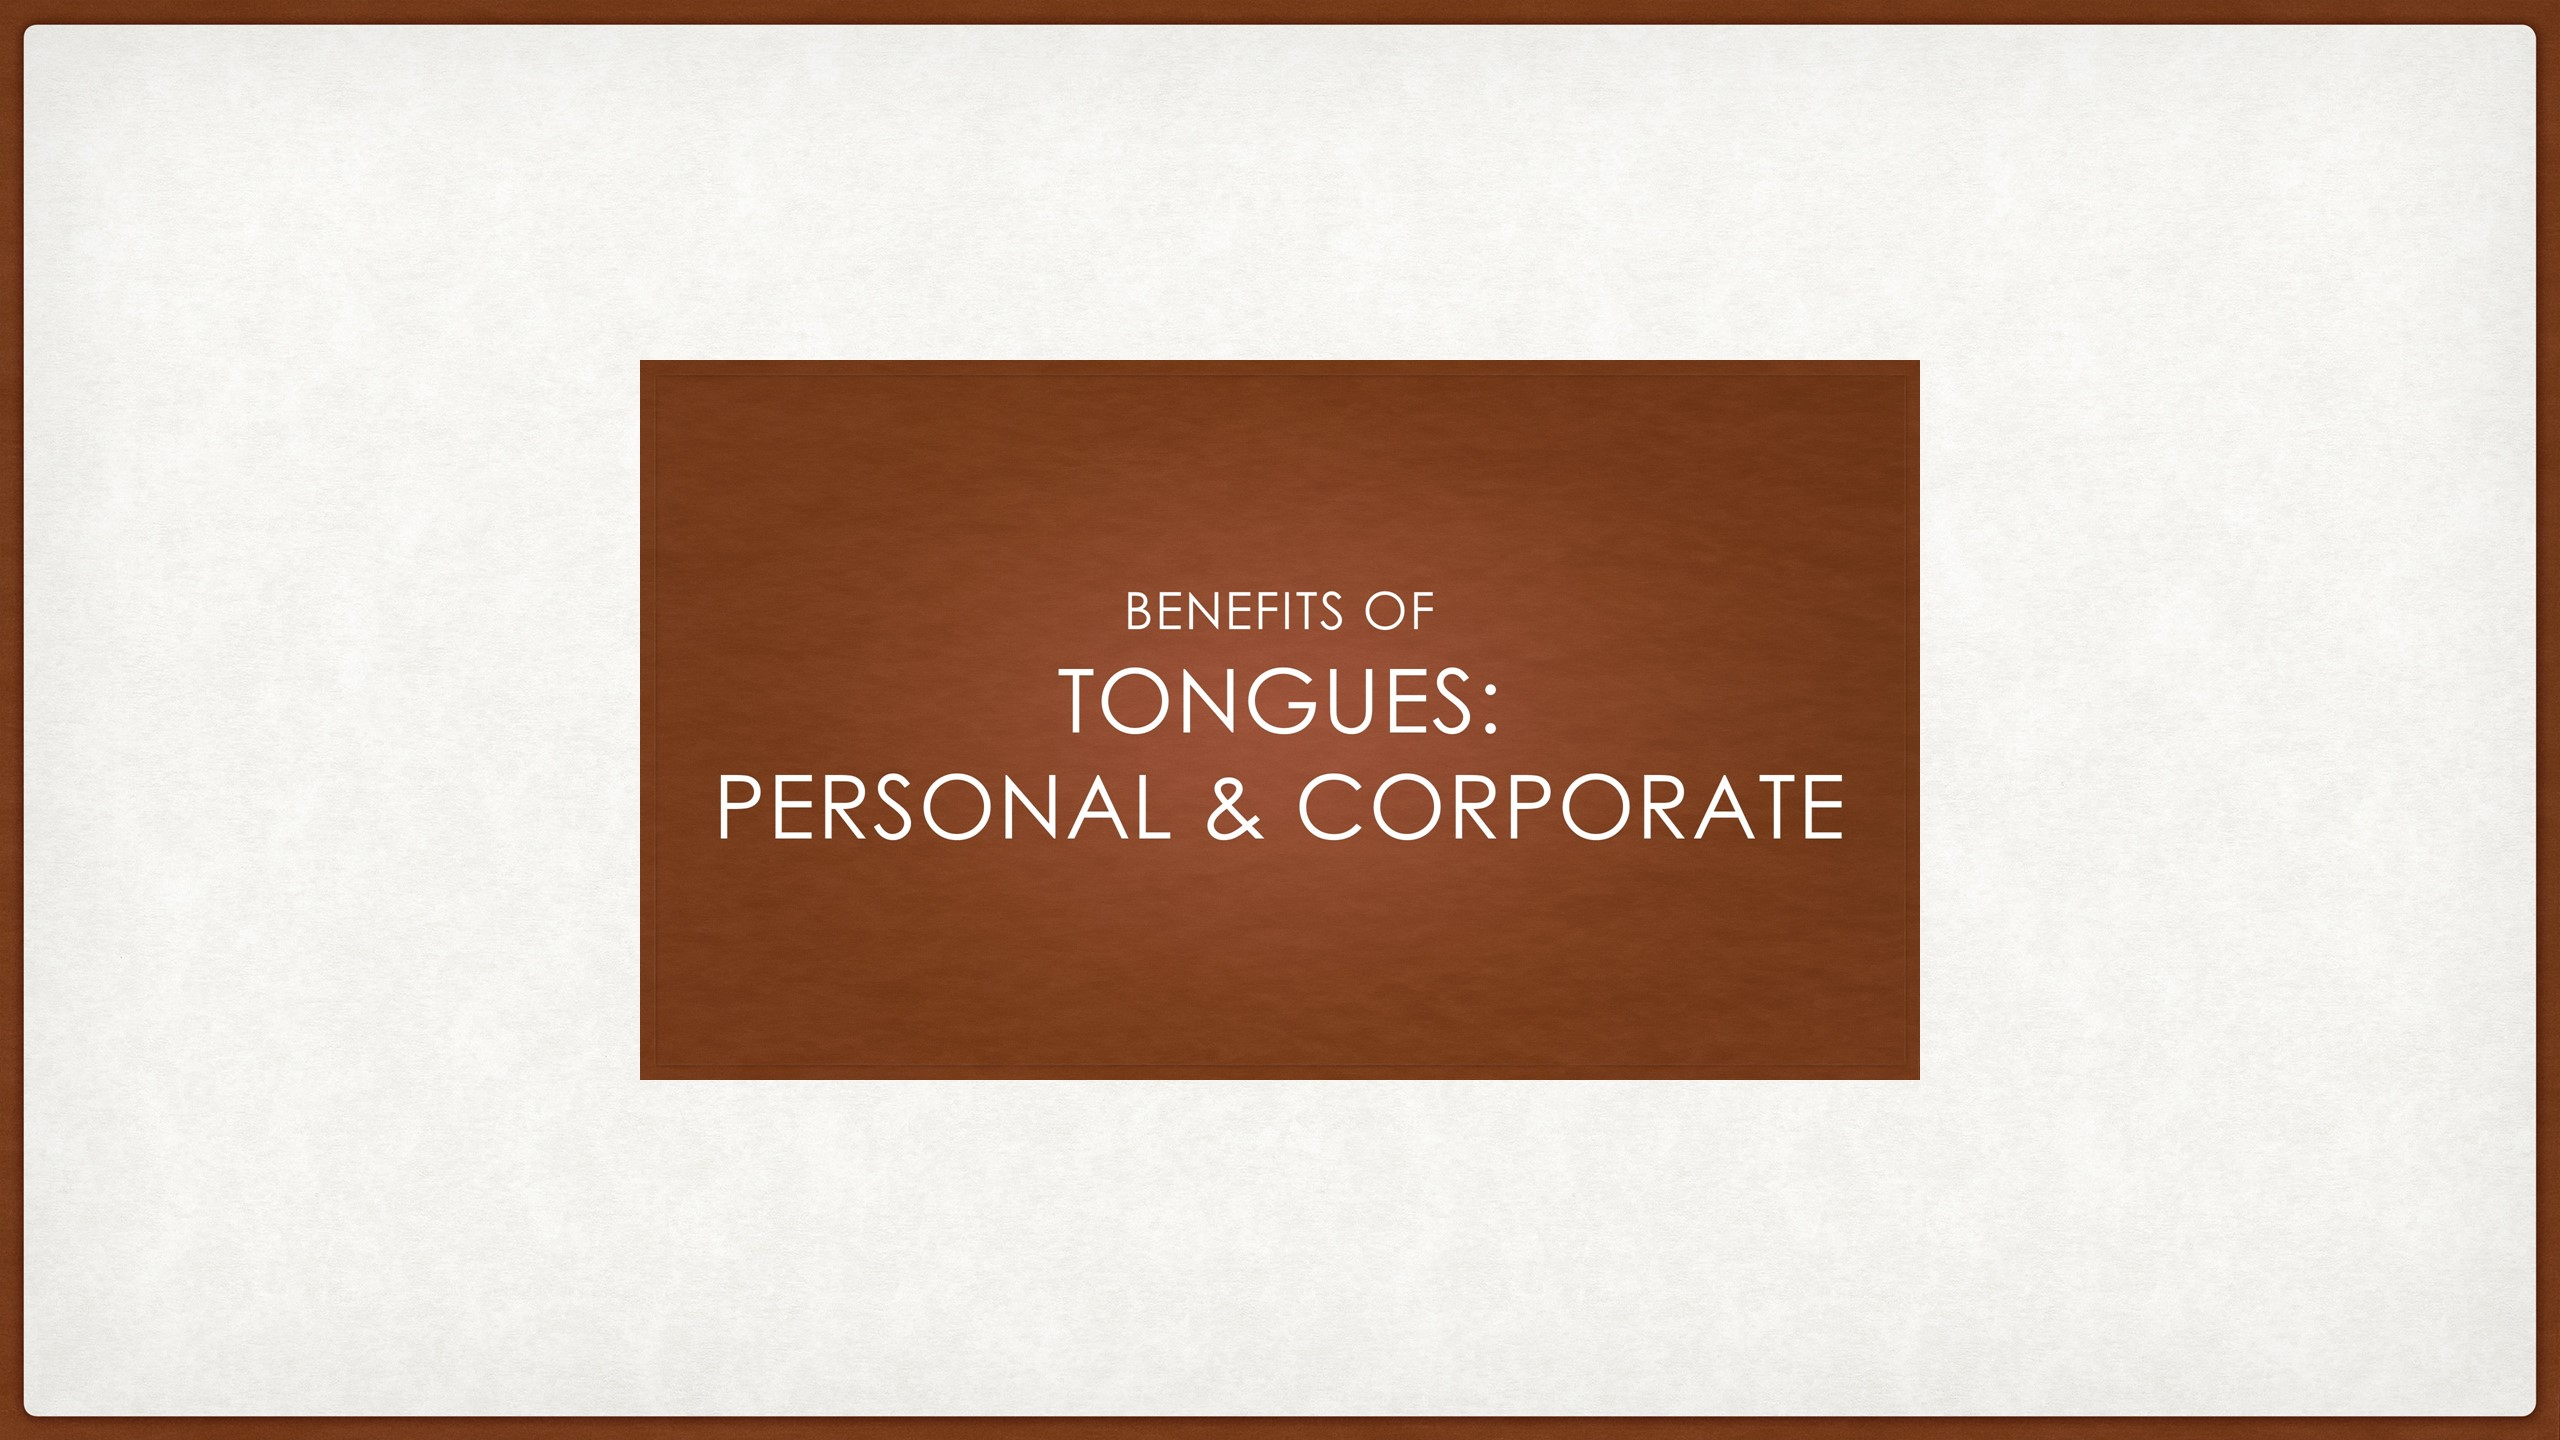 Benefits of Tongues:  Personal & Corporate